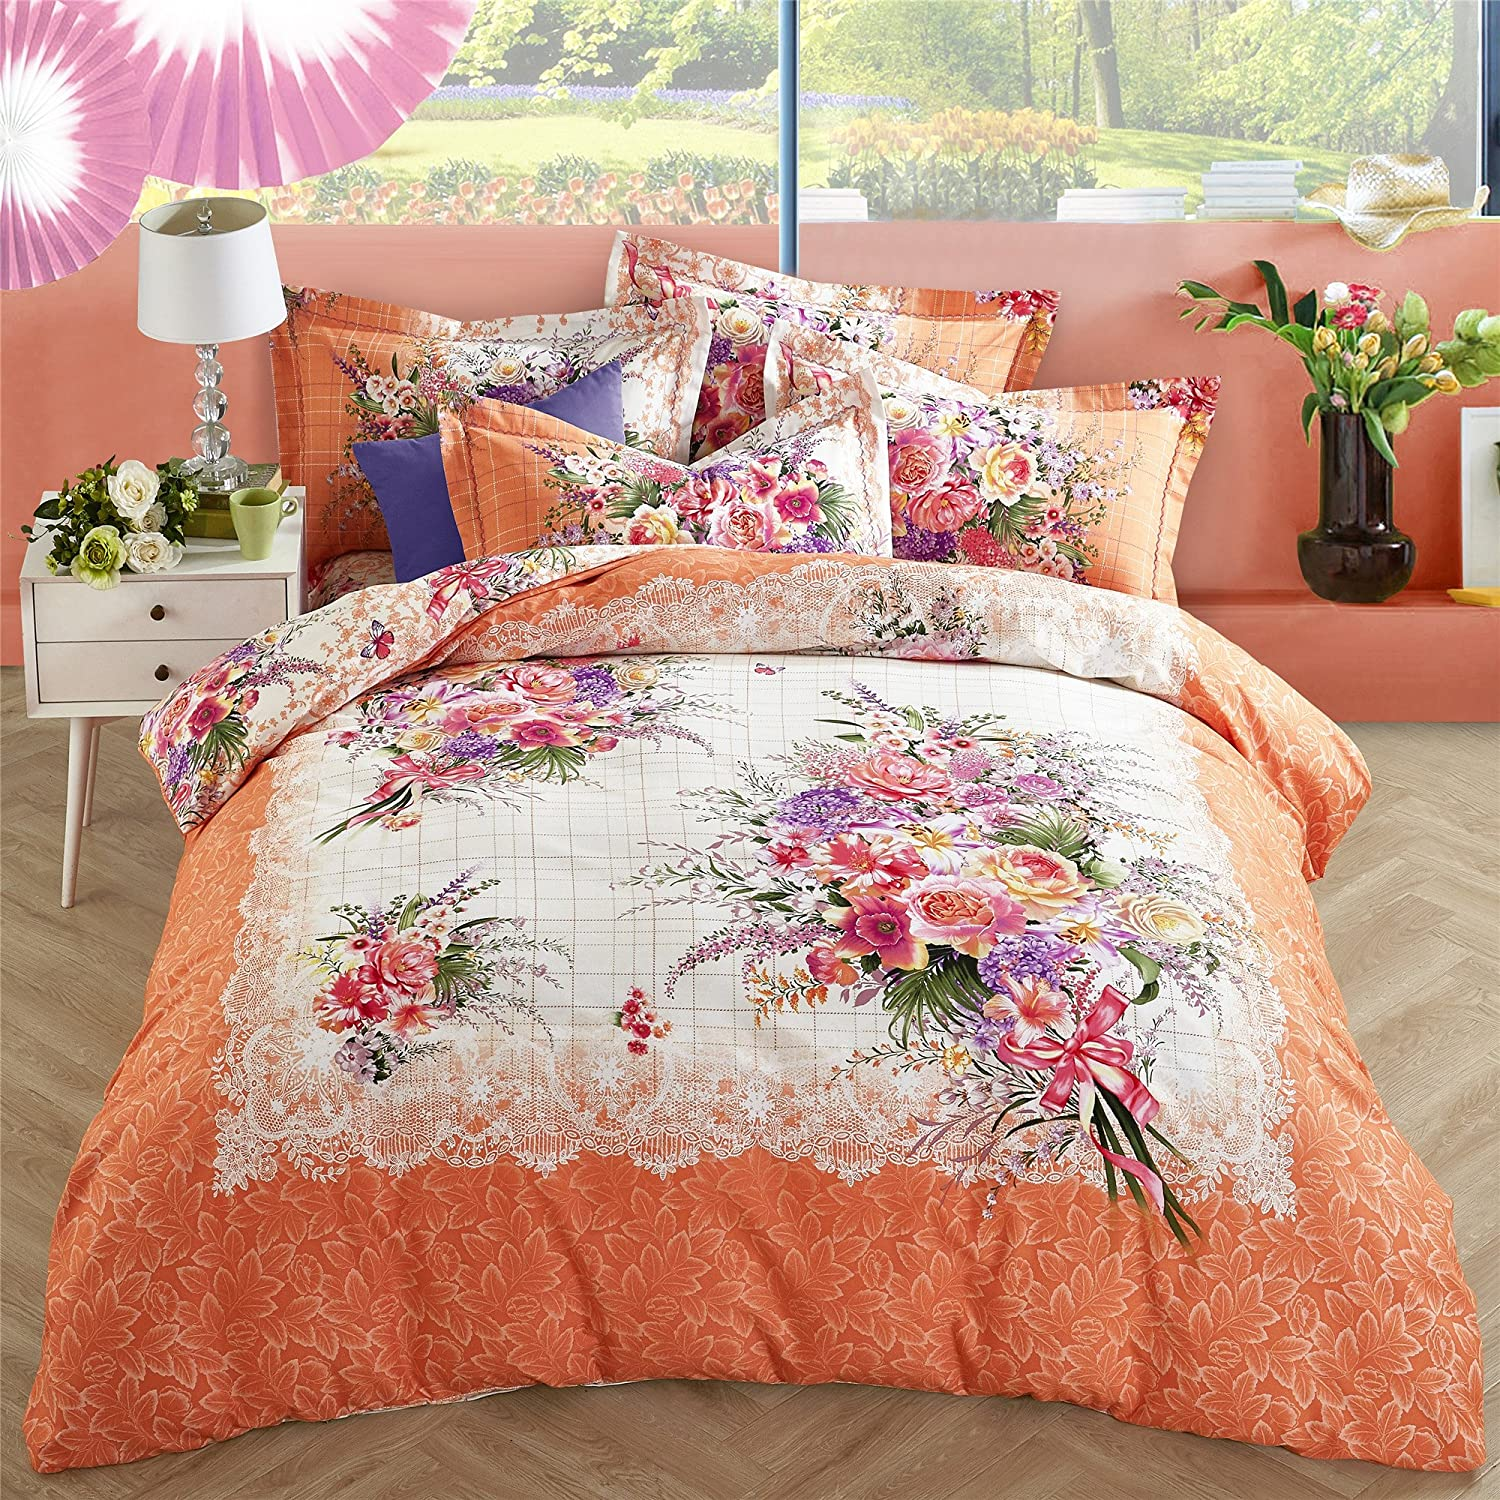 Elegant 4 Piece Various Vibrant Blooming Floral Printed Duvet Cover Set Cotton Hypoallergenic Style Bedding Sets/Collections